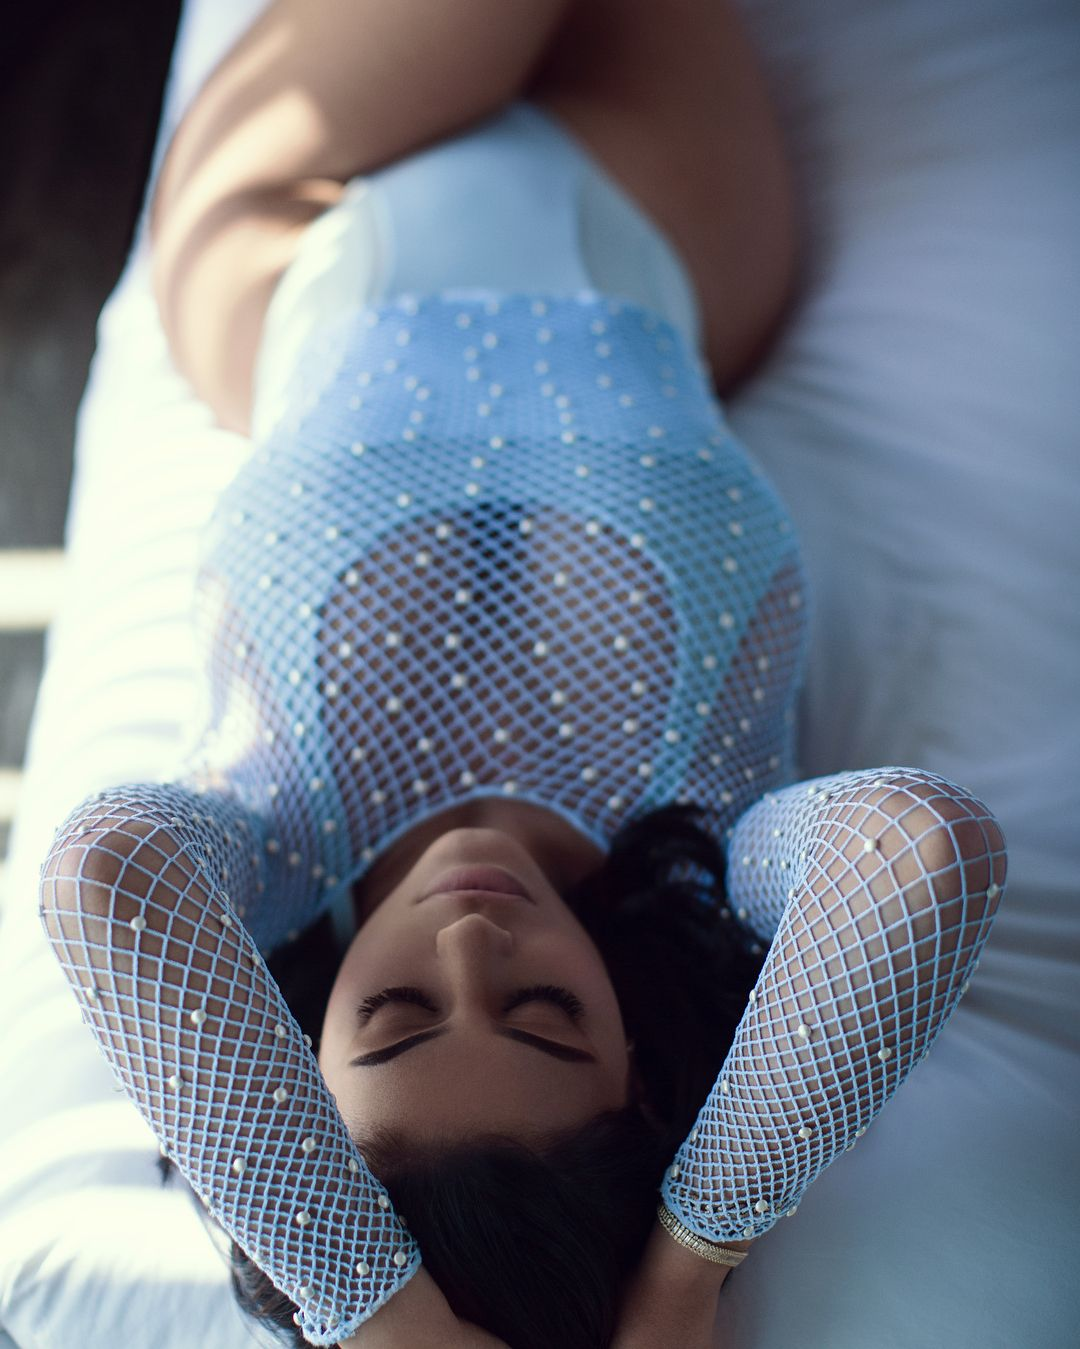 Kylie Jenner In Her Fish Net Swim Suit with Pears